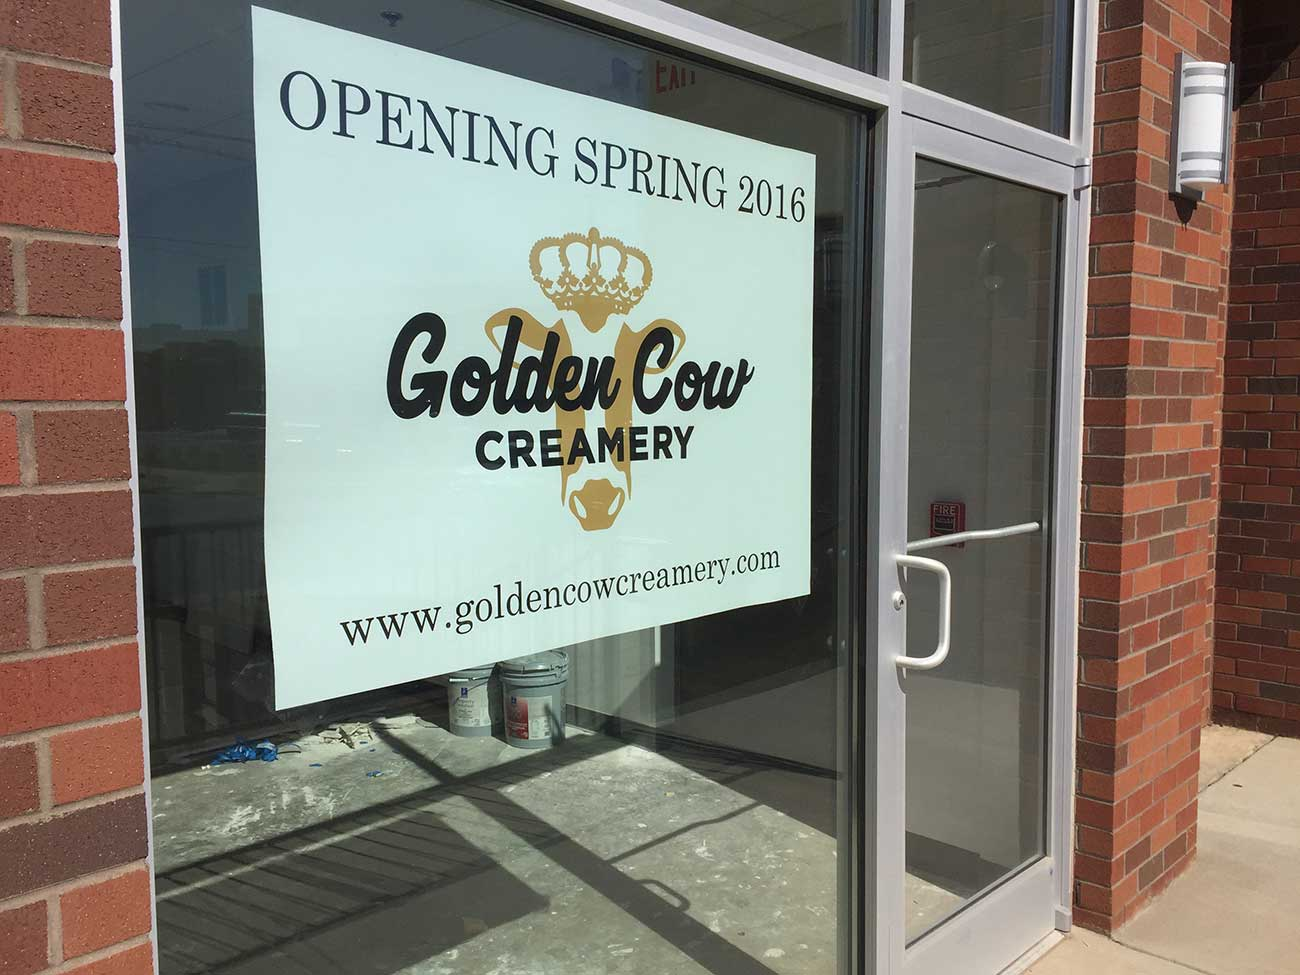 Golden Cow Creamery is looking for help to buy milk and sugar for opening weekend